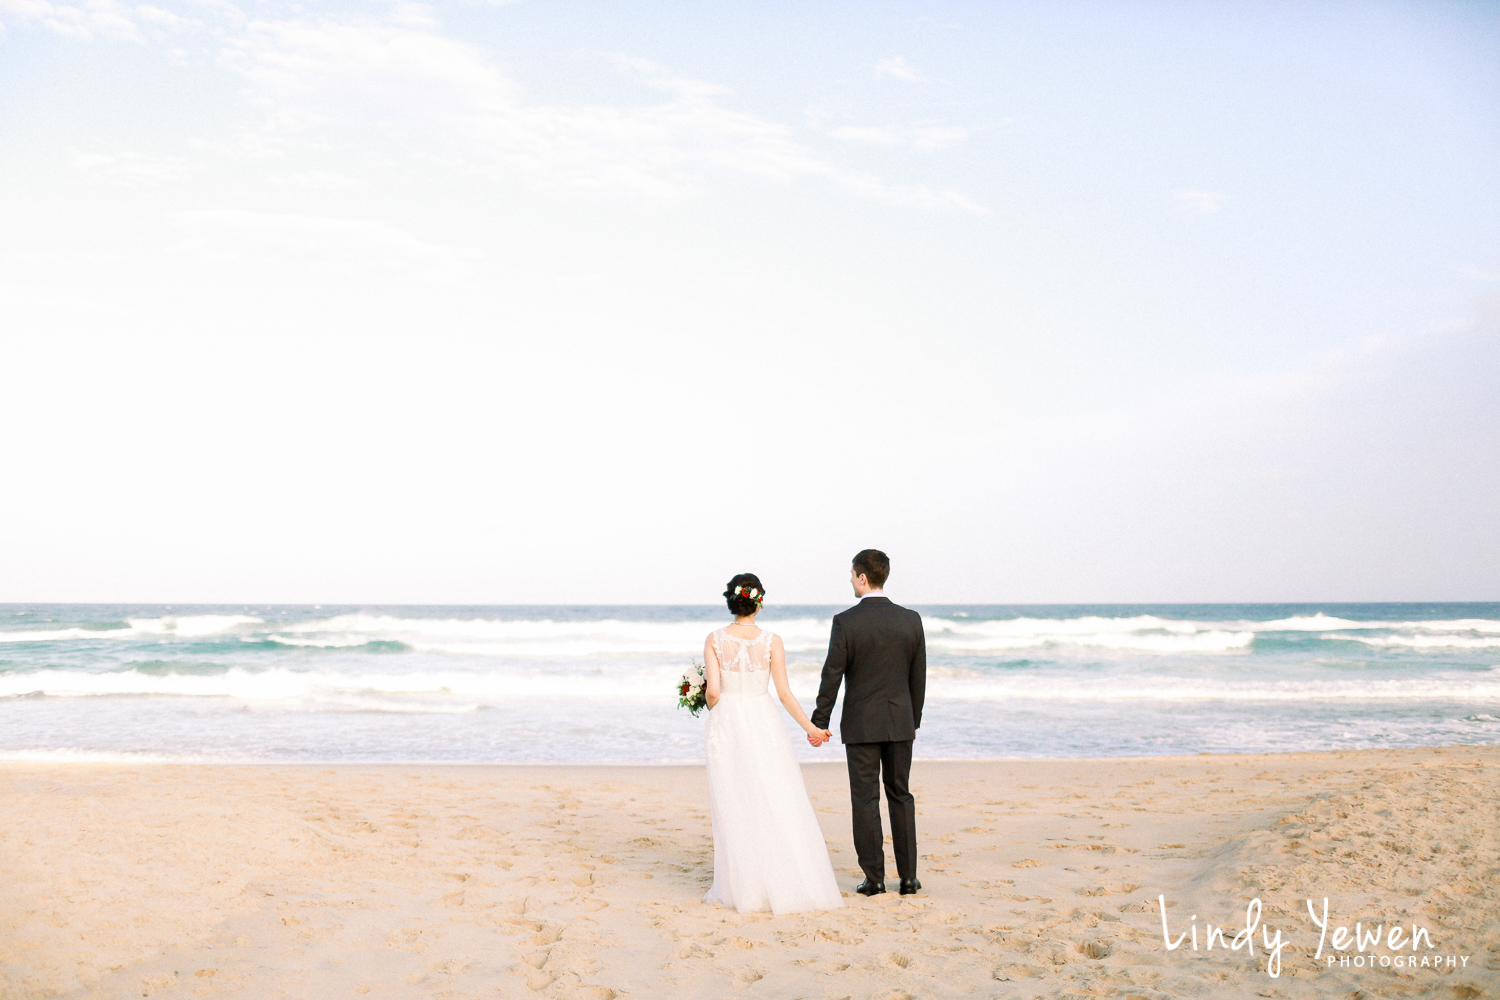 Sunshine-Beach-Weddings-Dimitrije-Maria 110.jpg